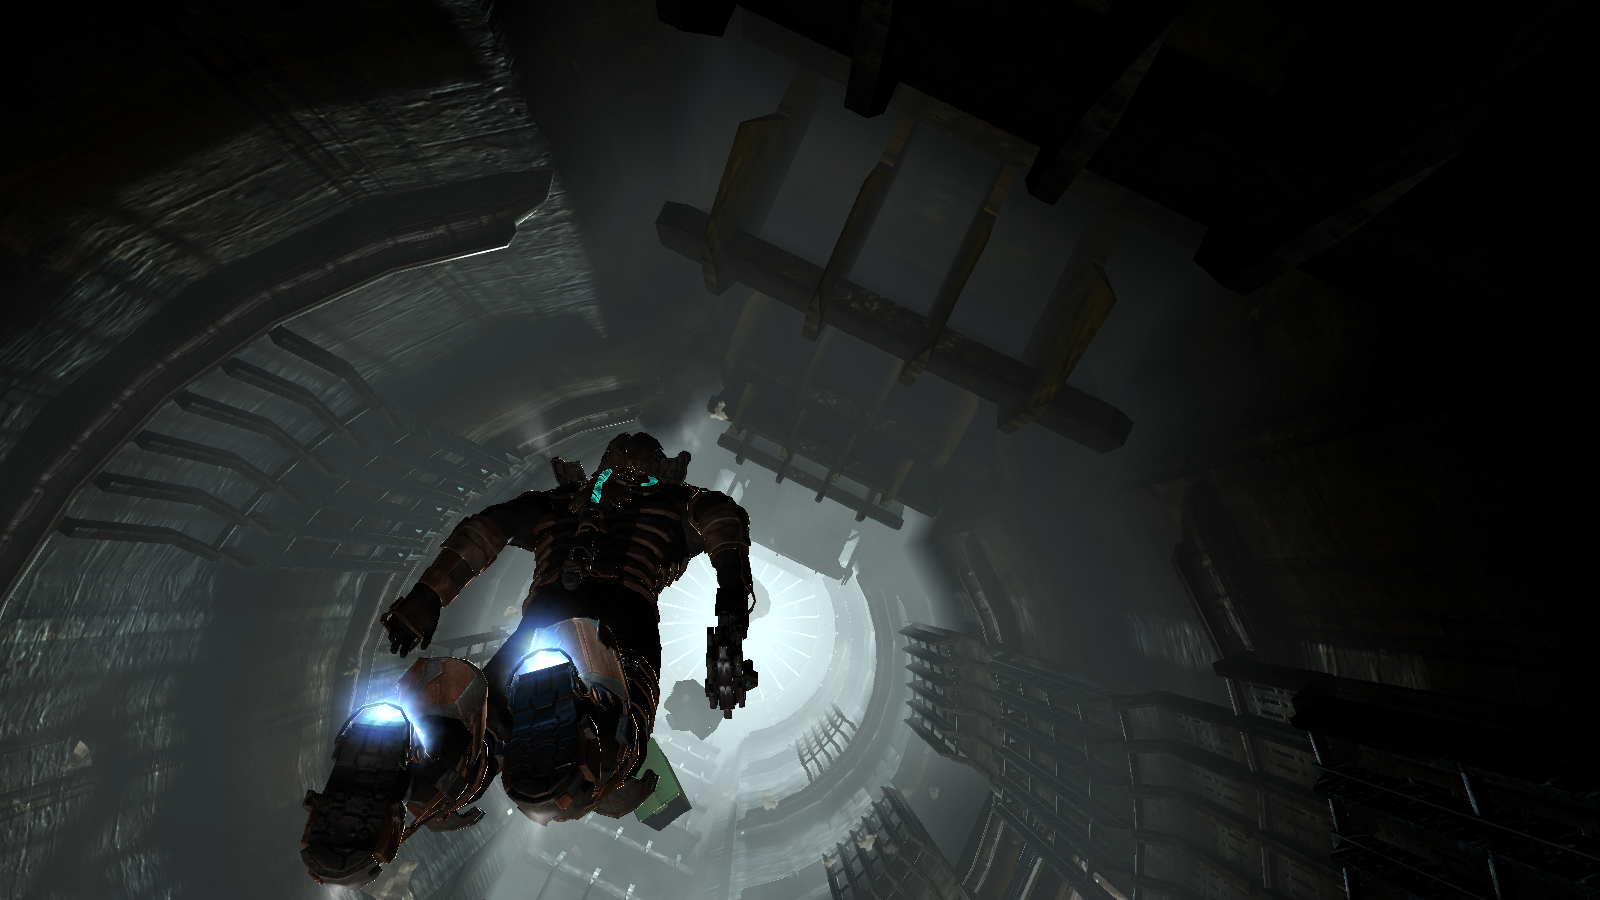 Dead space 2 wallpaper and background image 1600x900 - Space wallpaper 1600x900 ...